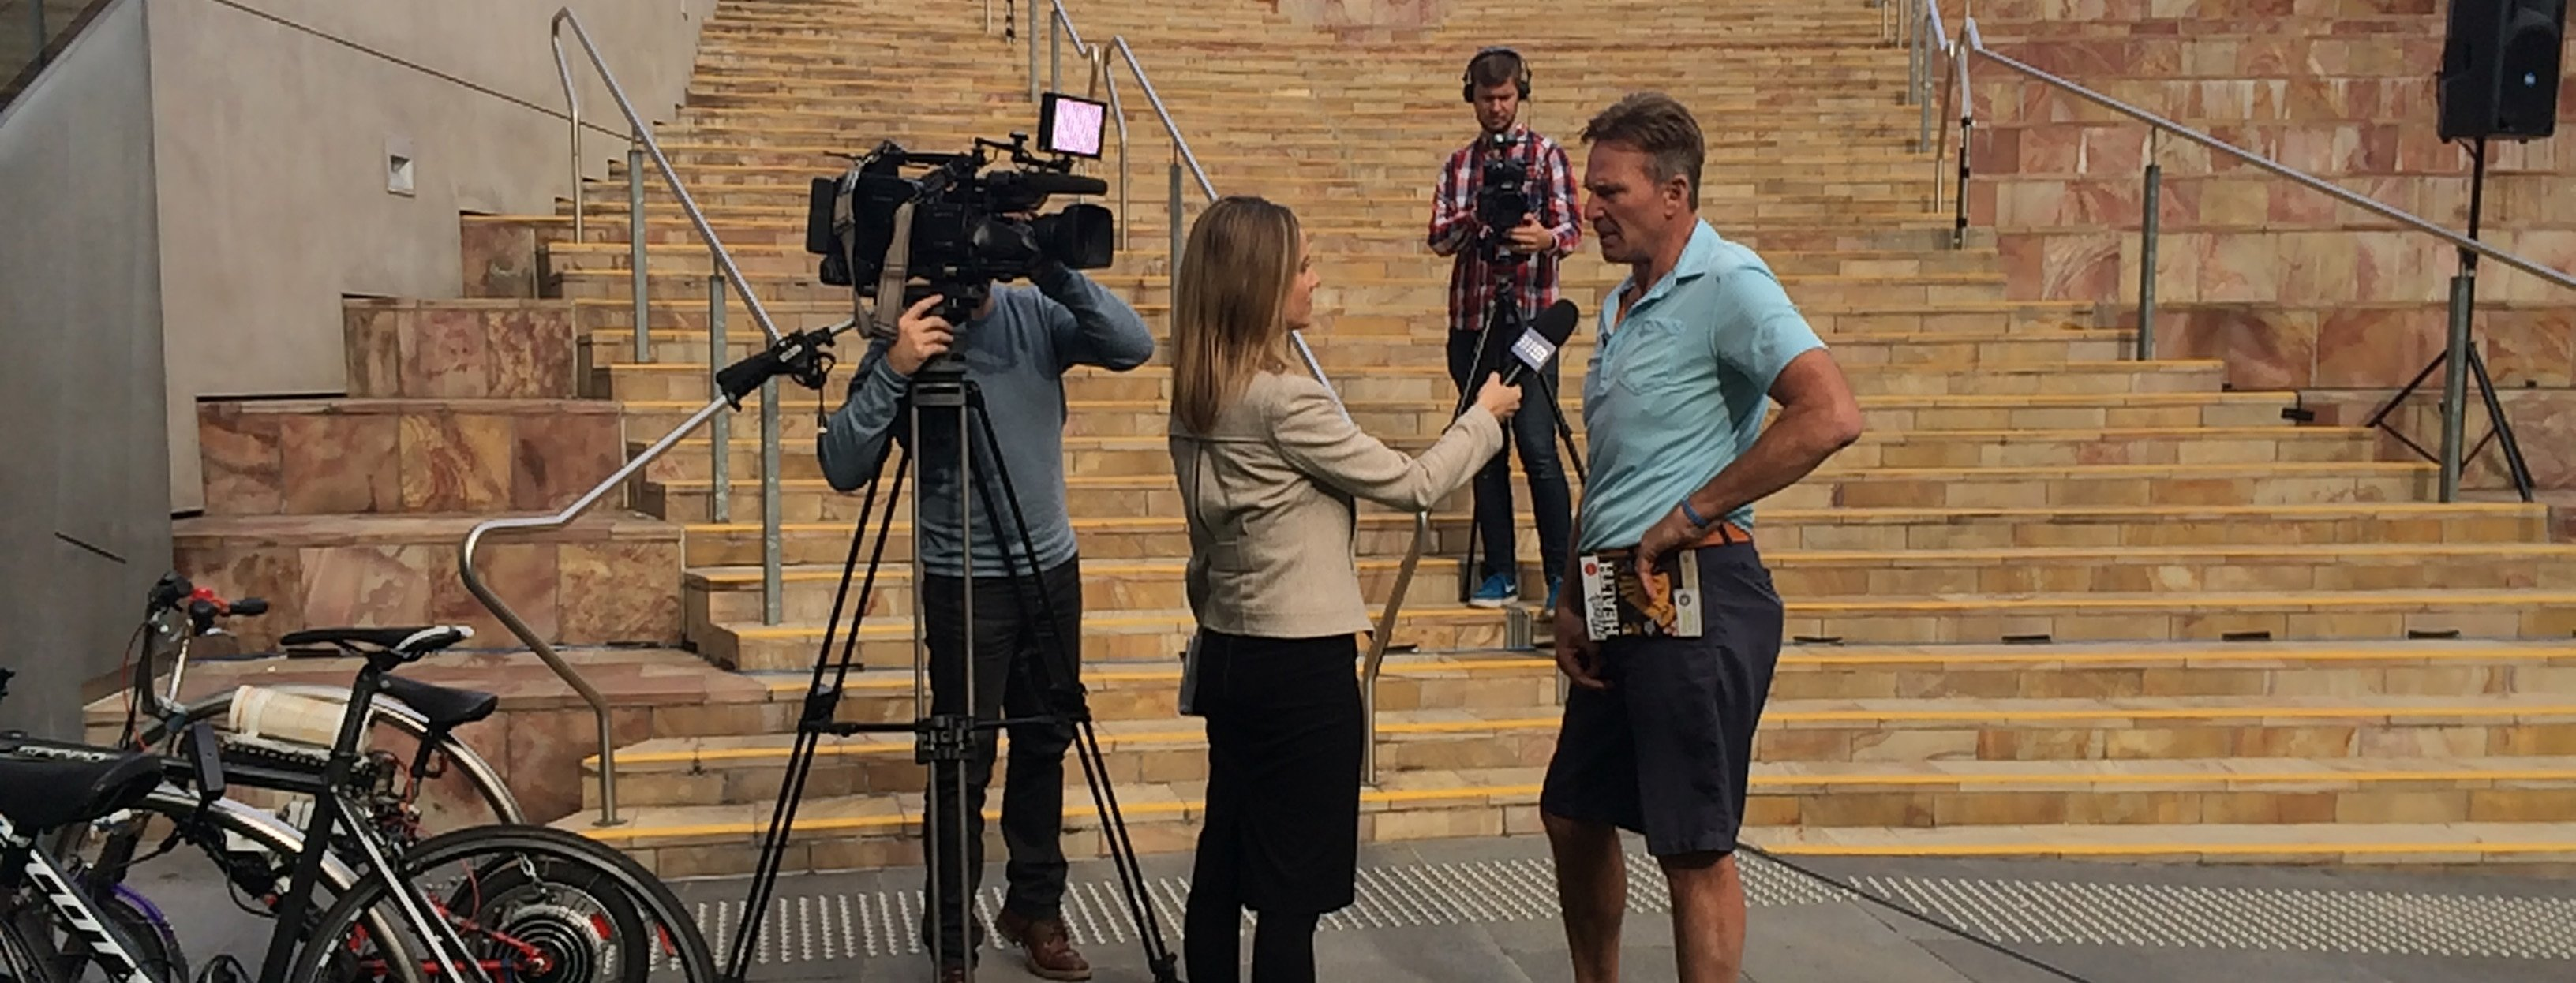 BPH event sam newman with channel 9.jpg